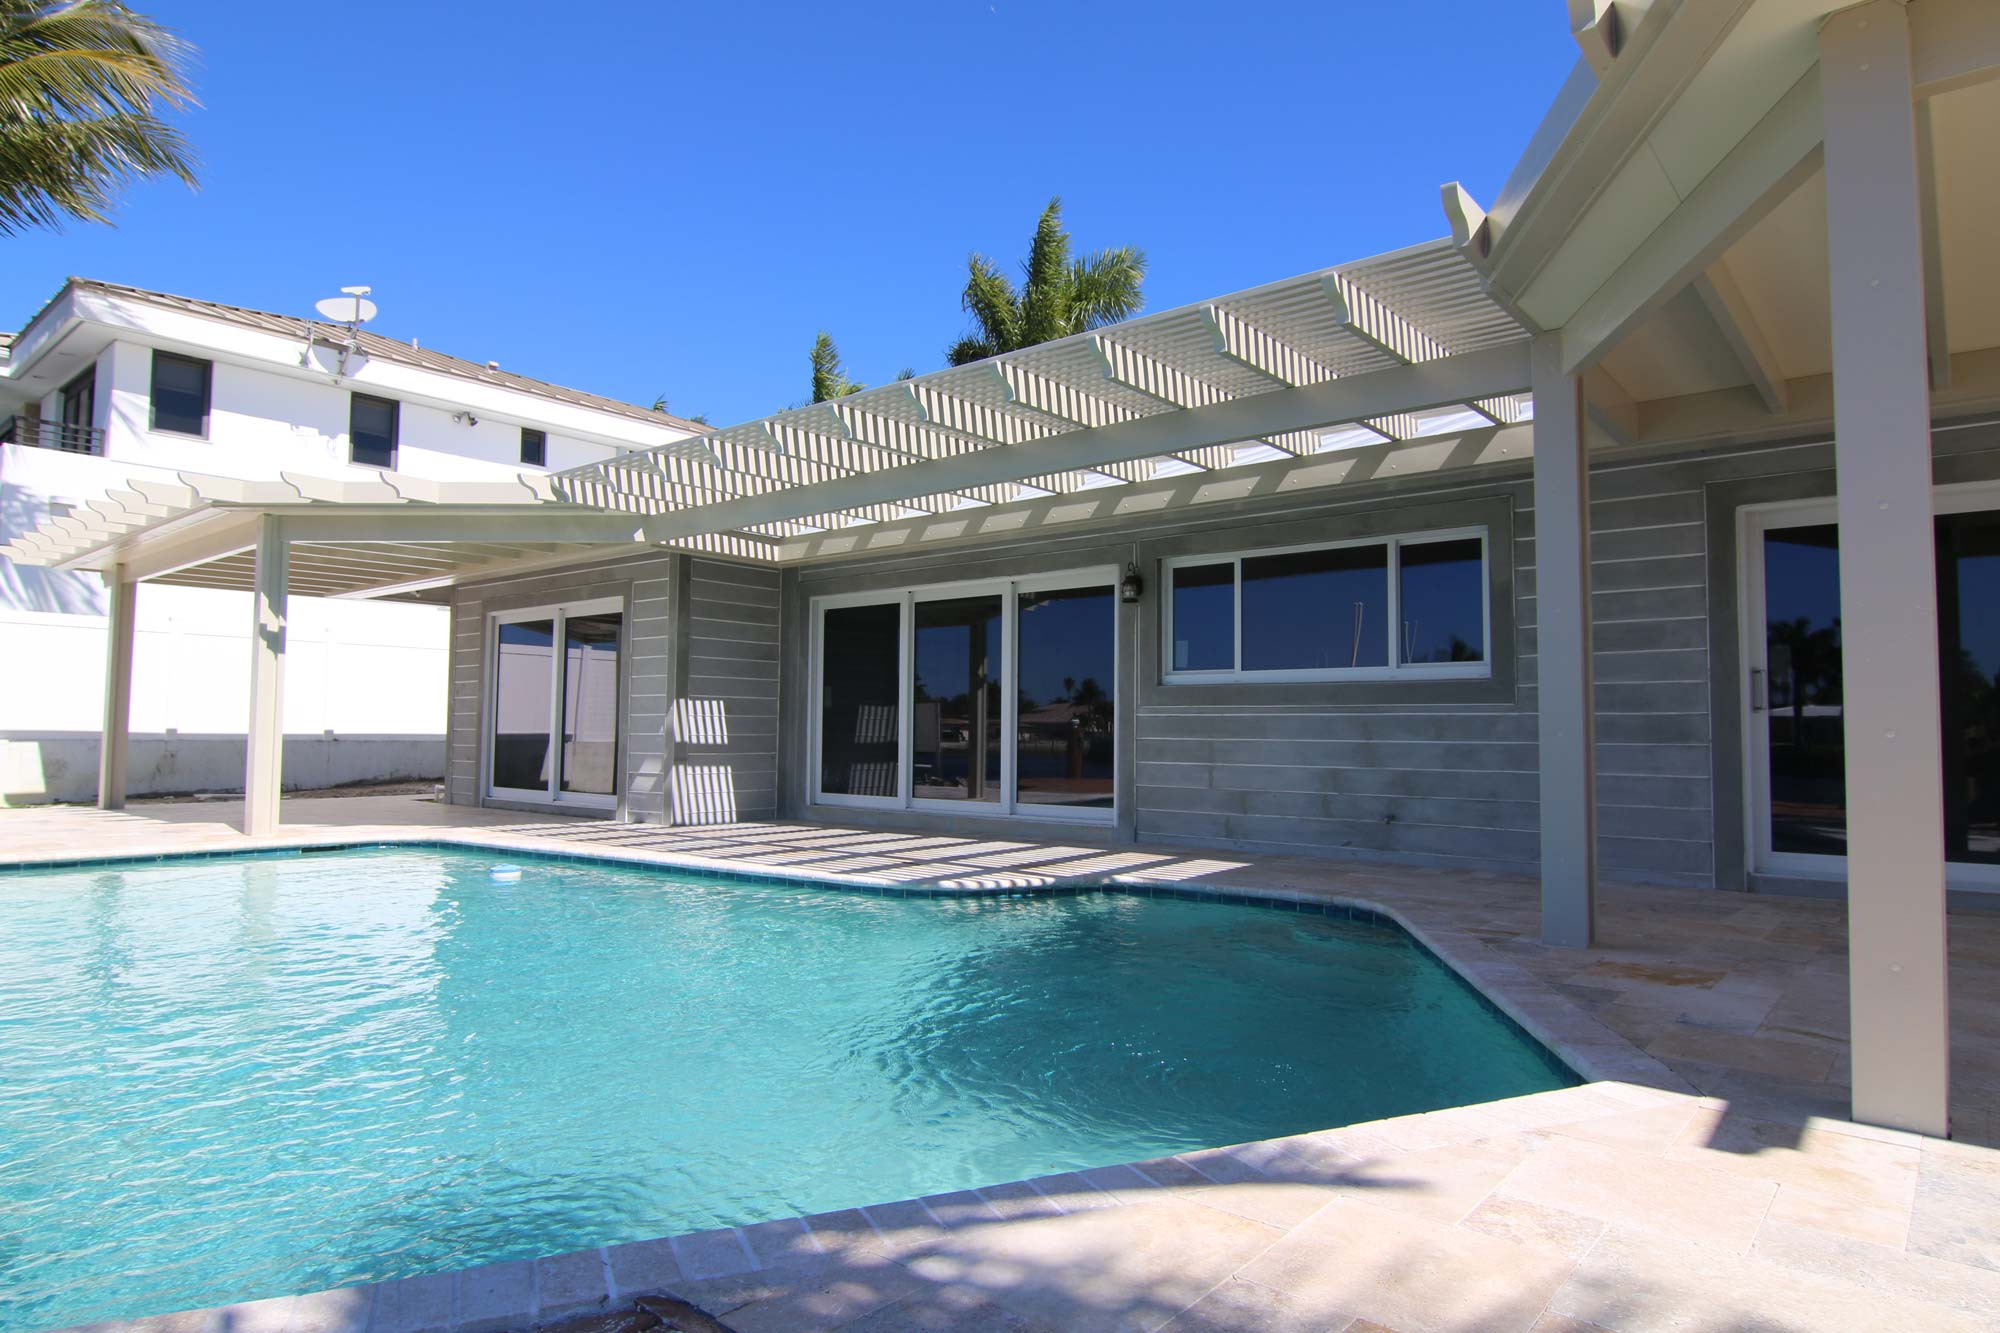 Alumawood Patio Covers | Floridian Patio Products